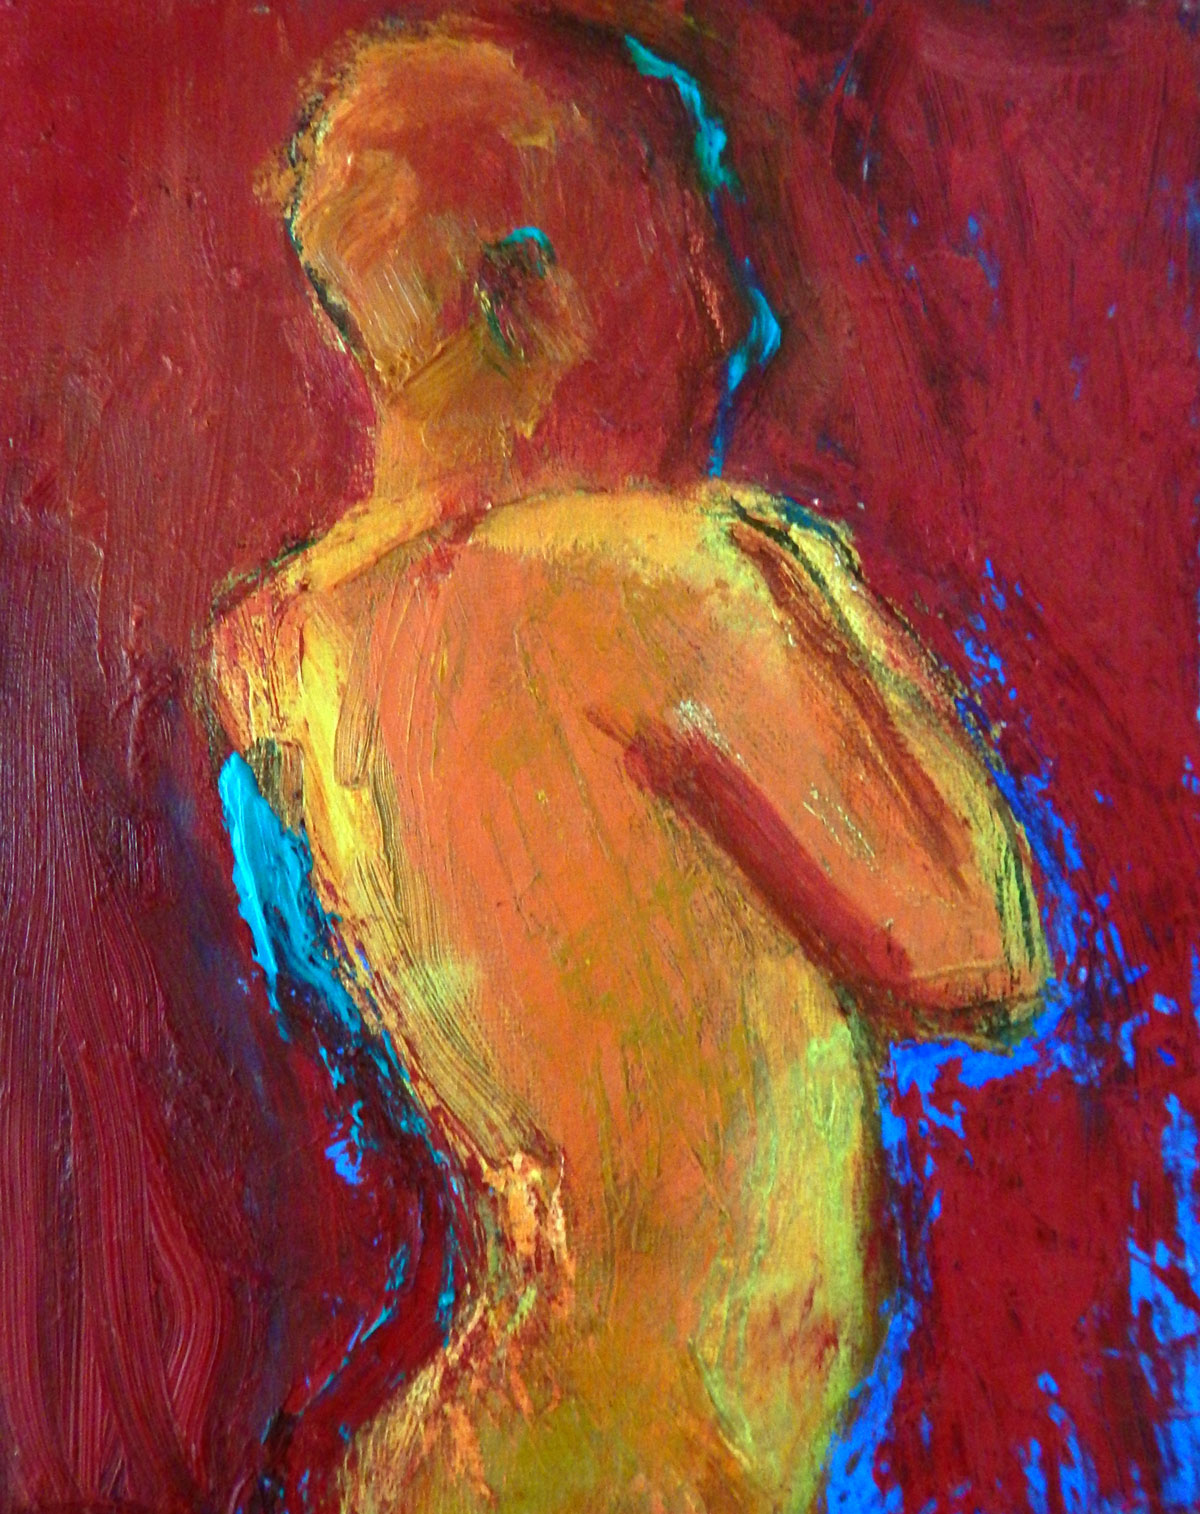 Warm and cool figure | oil on panel 10 x 8 2018